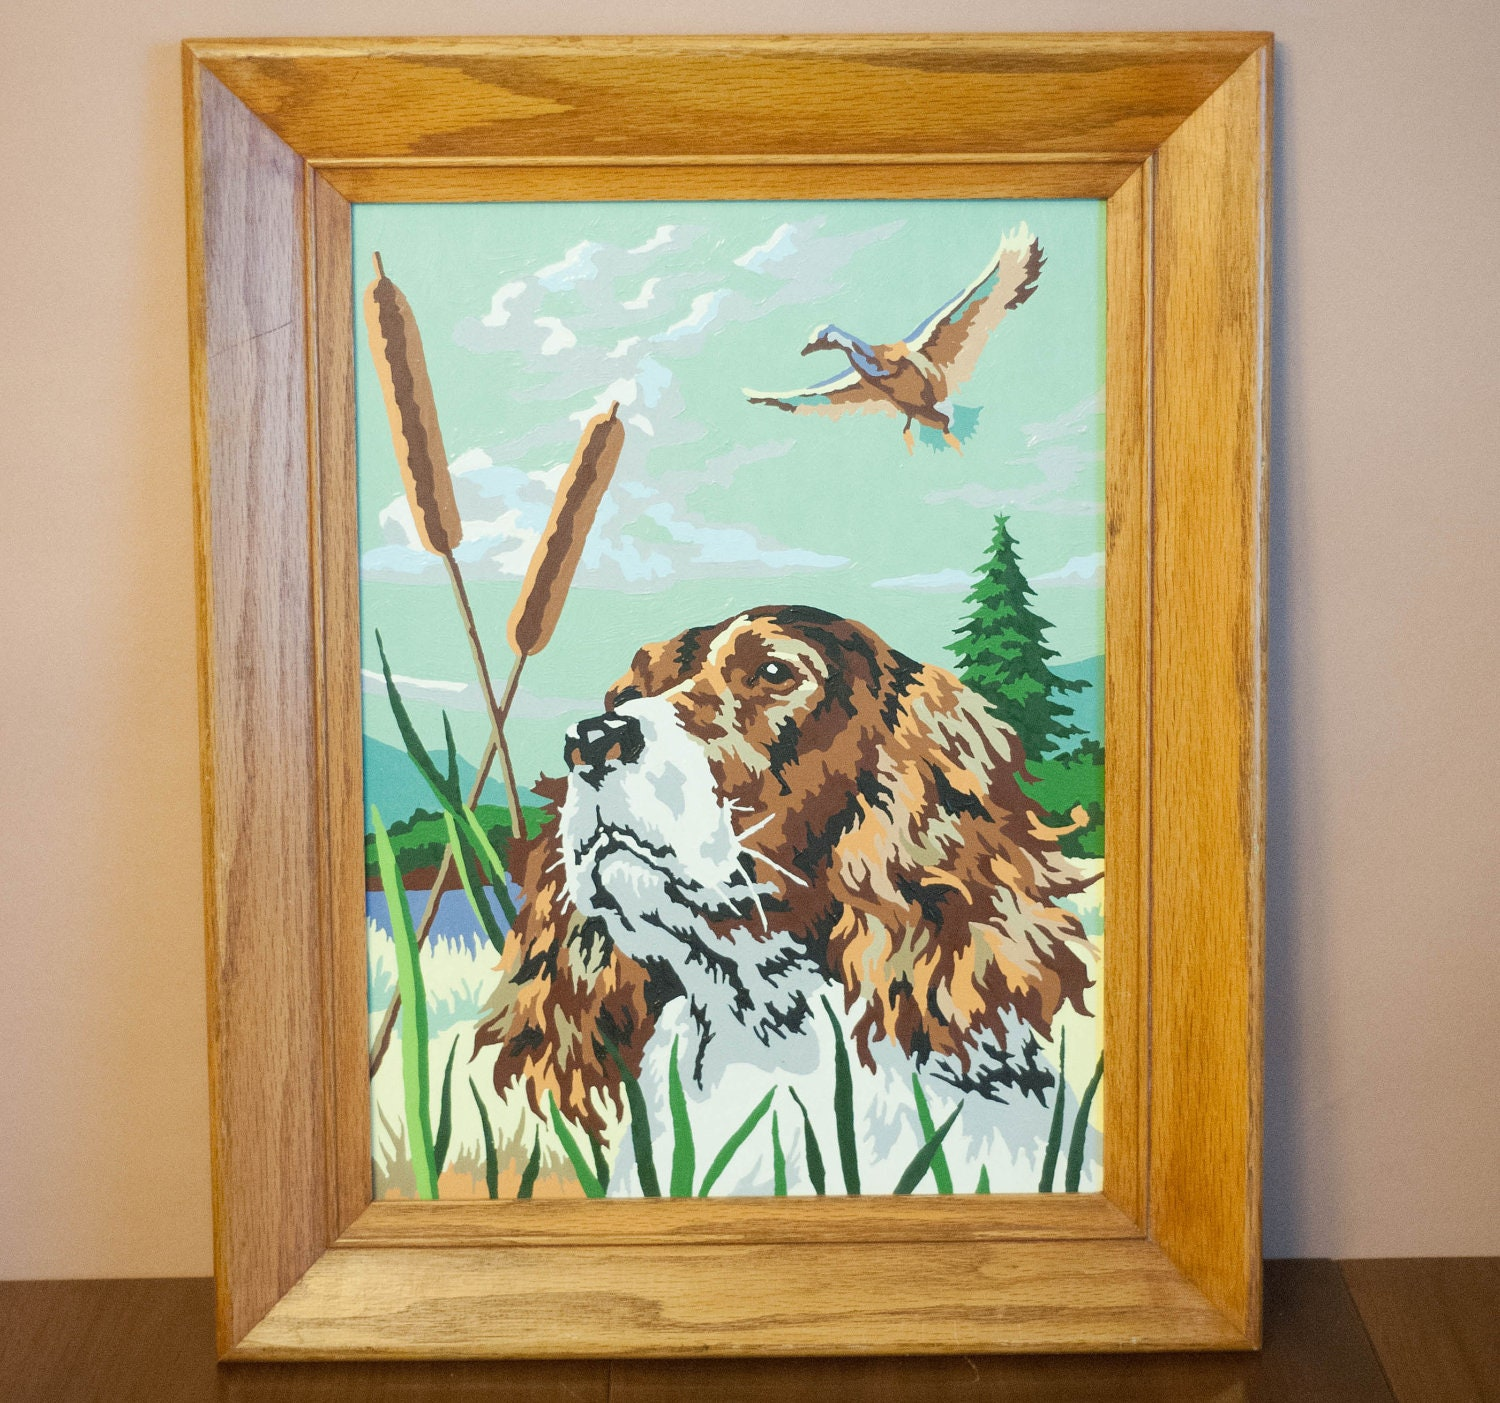 Vintage framed paint by number painting hunting dog bird mid century